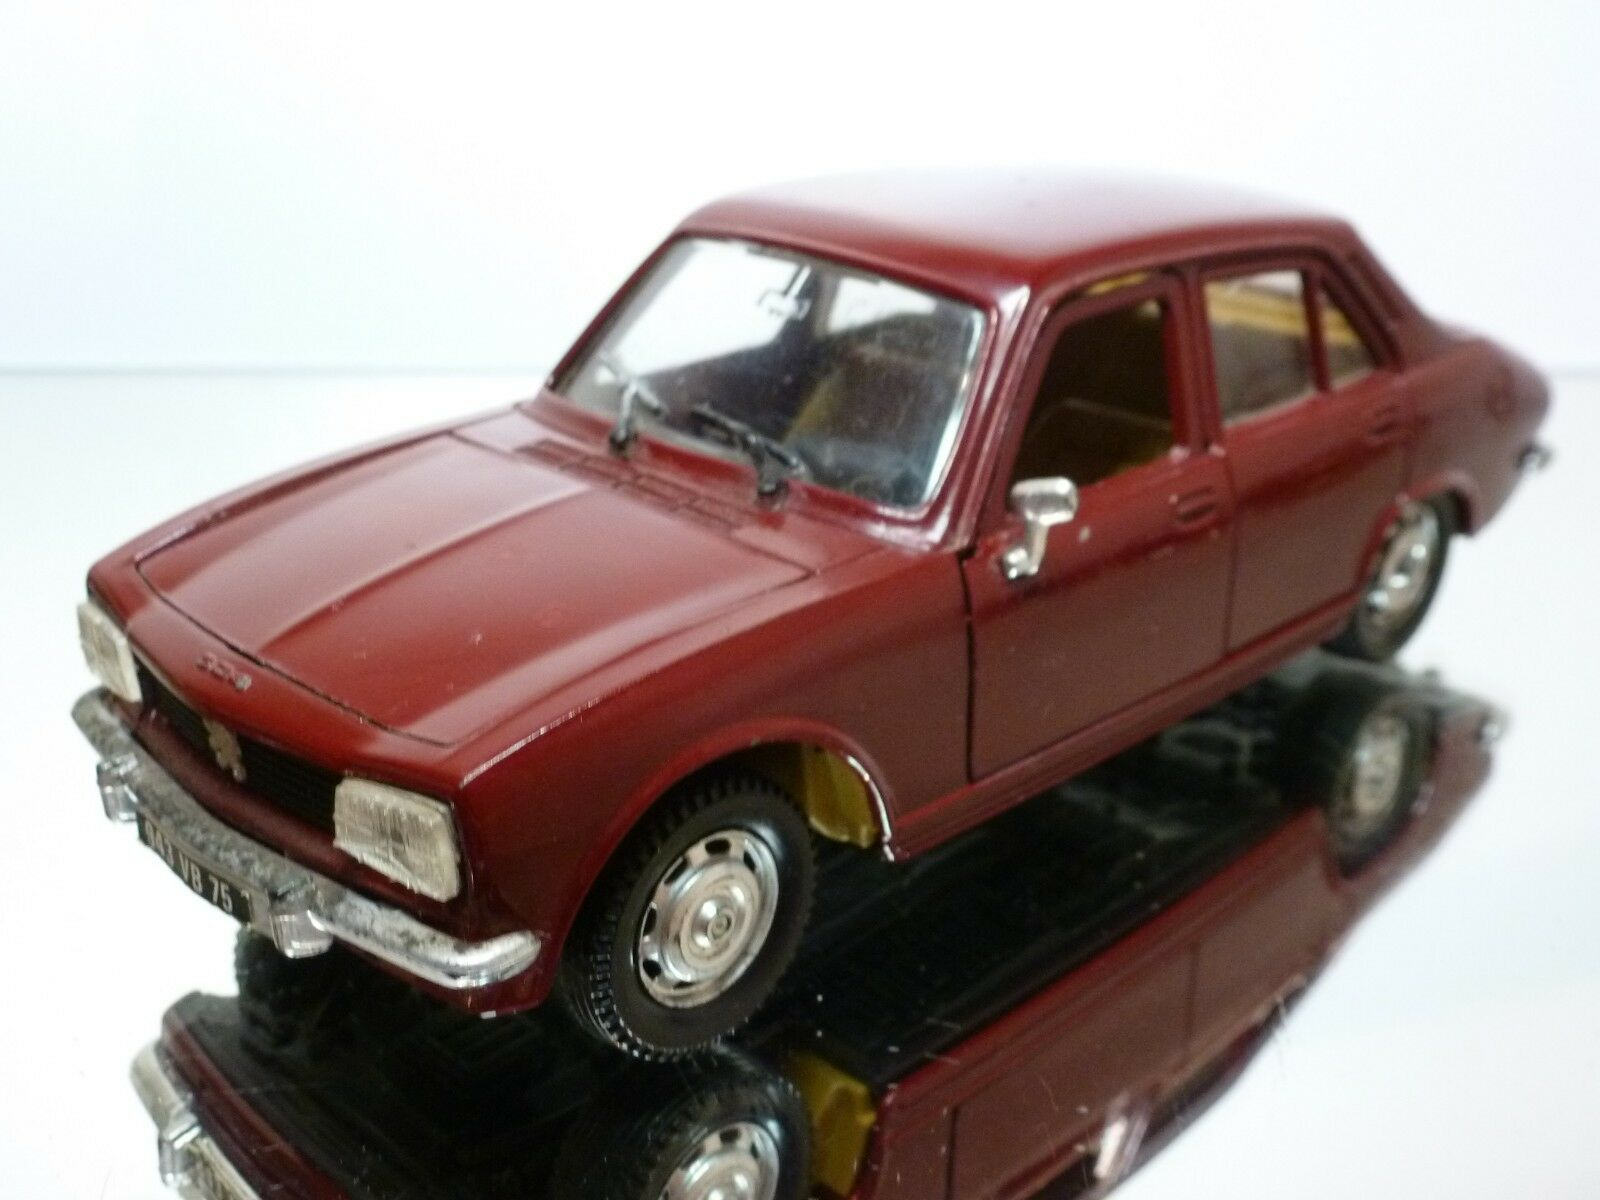 POLISTIL S48 PEUGEOT 504 GL - DARK rouge 1 26 - GOOD CONDITION